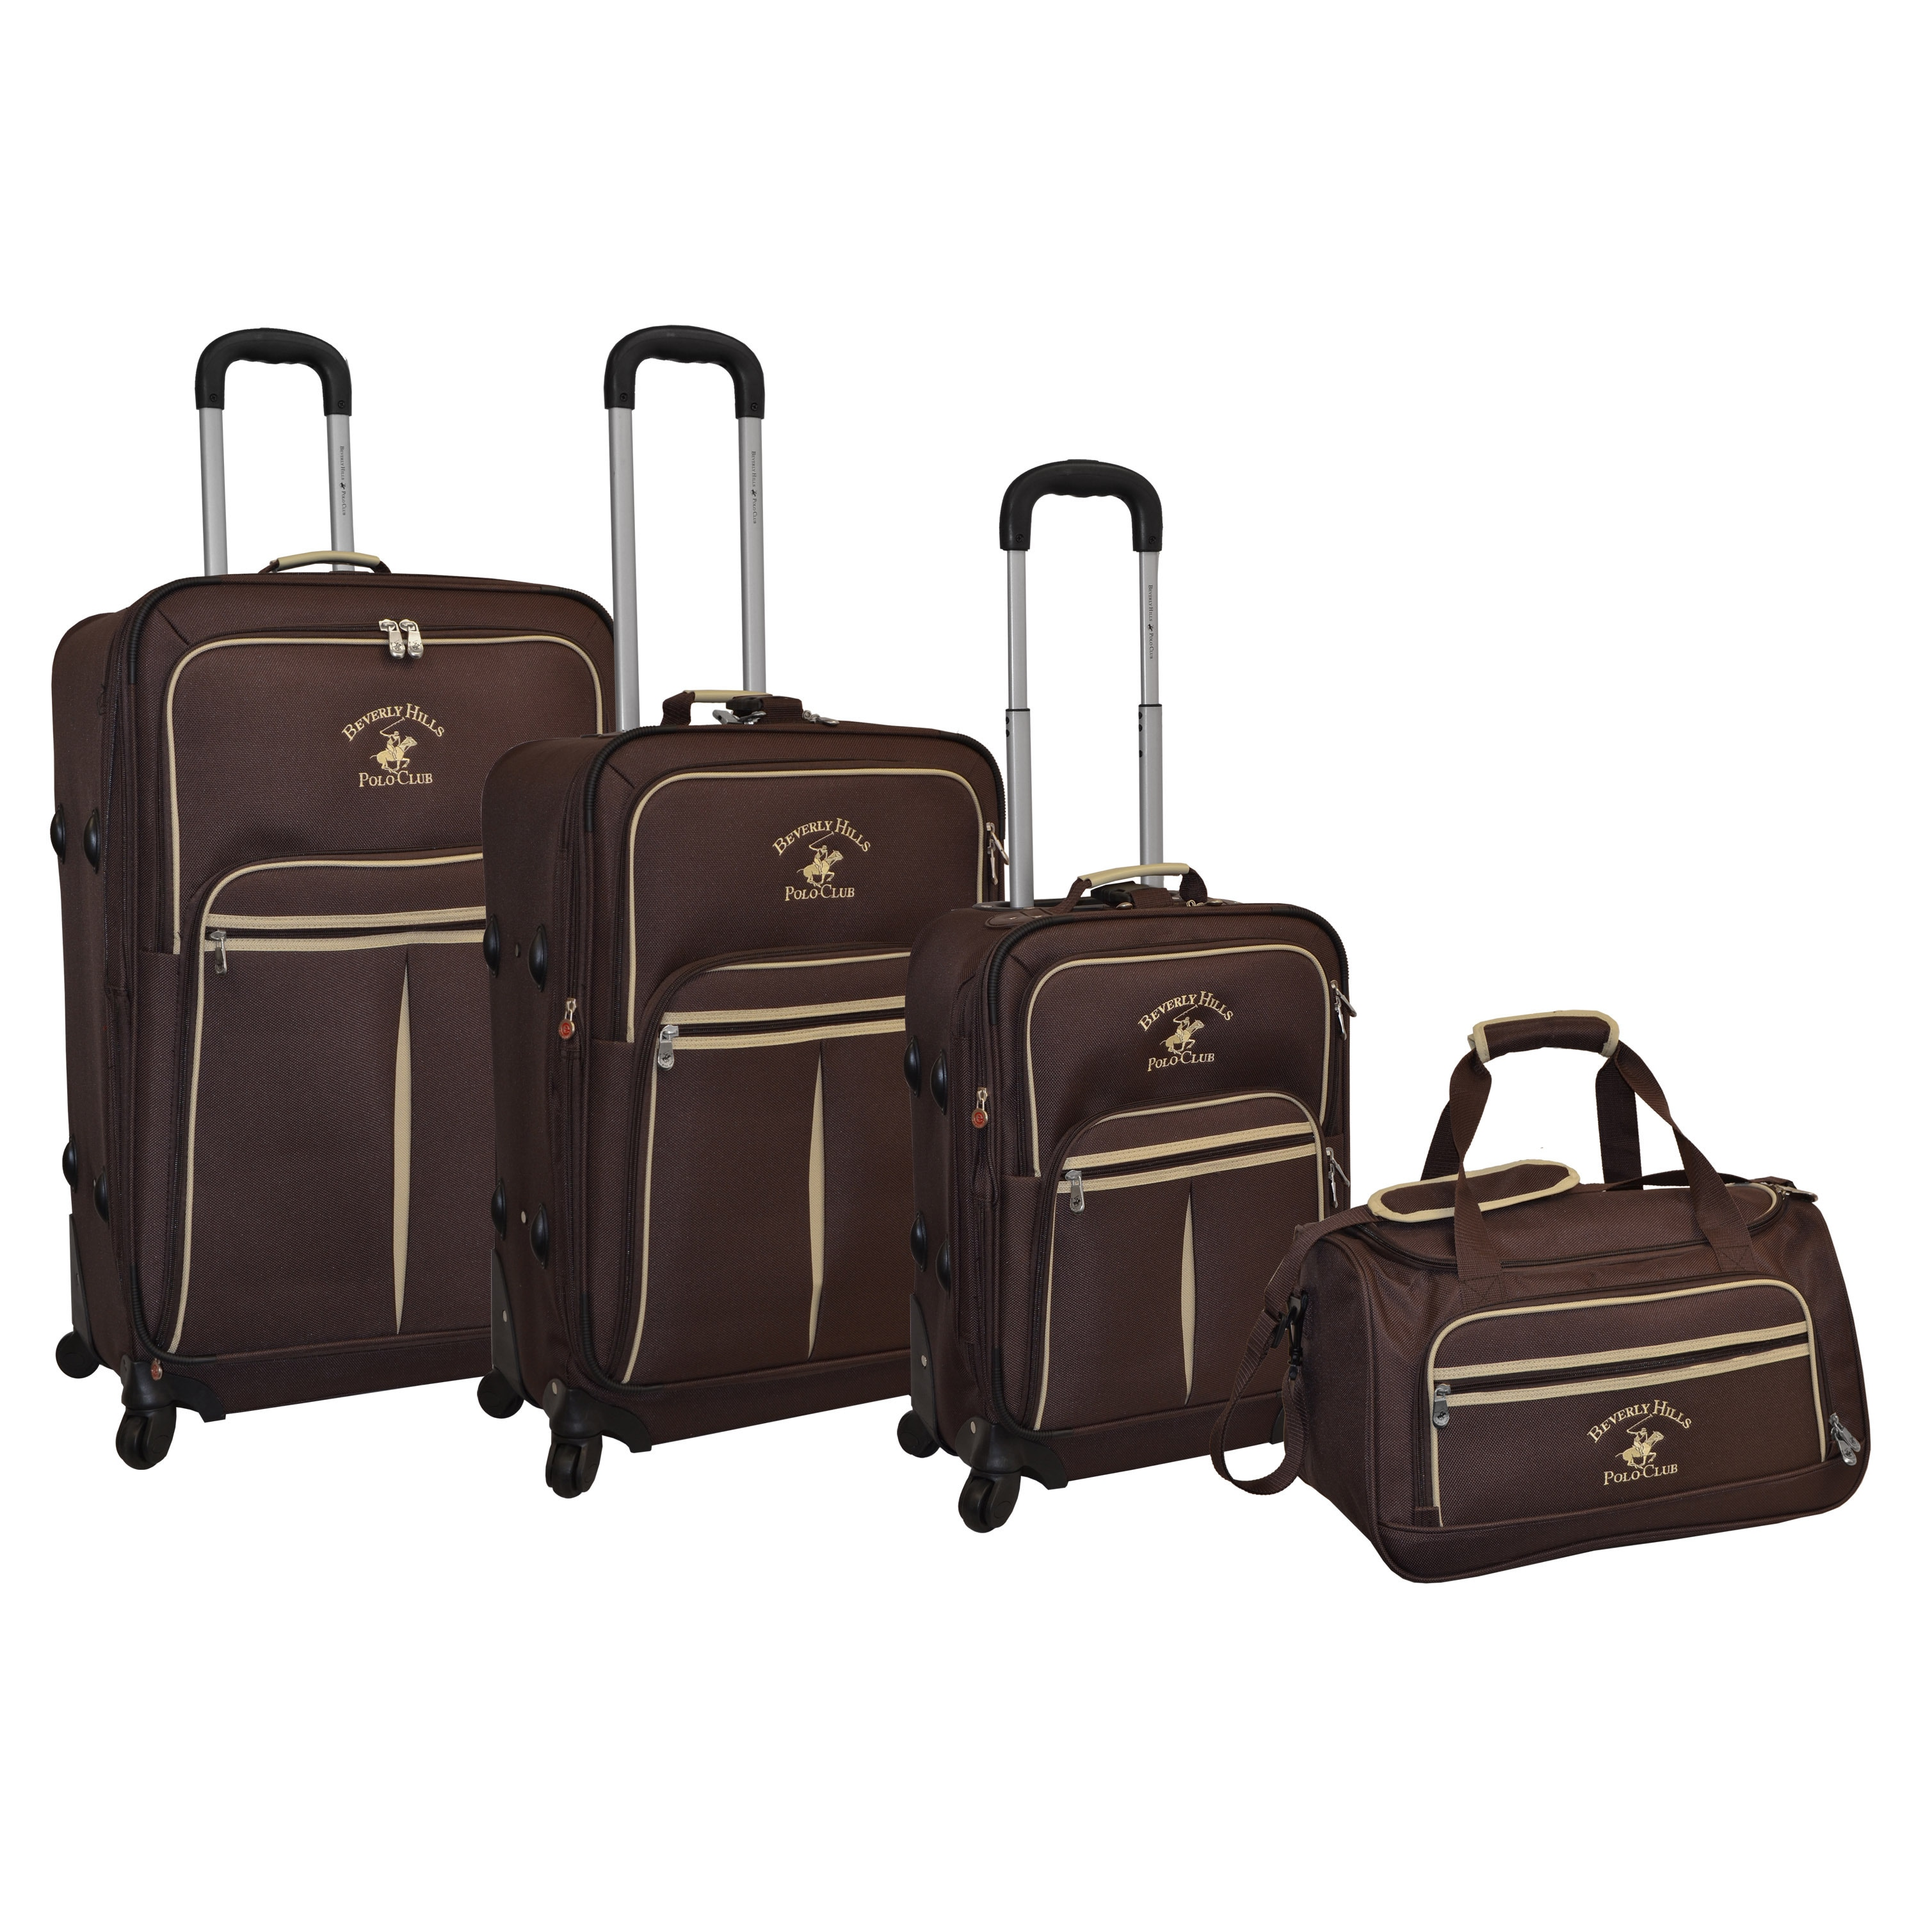 Beverly Hills Polo Club Pale Rider 4-Piece Spinner Luggage Set